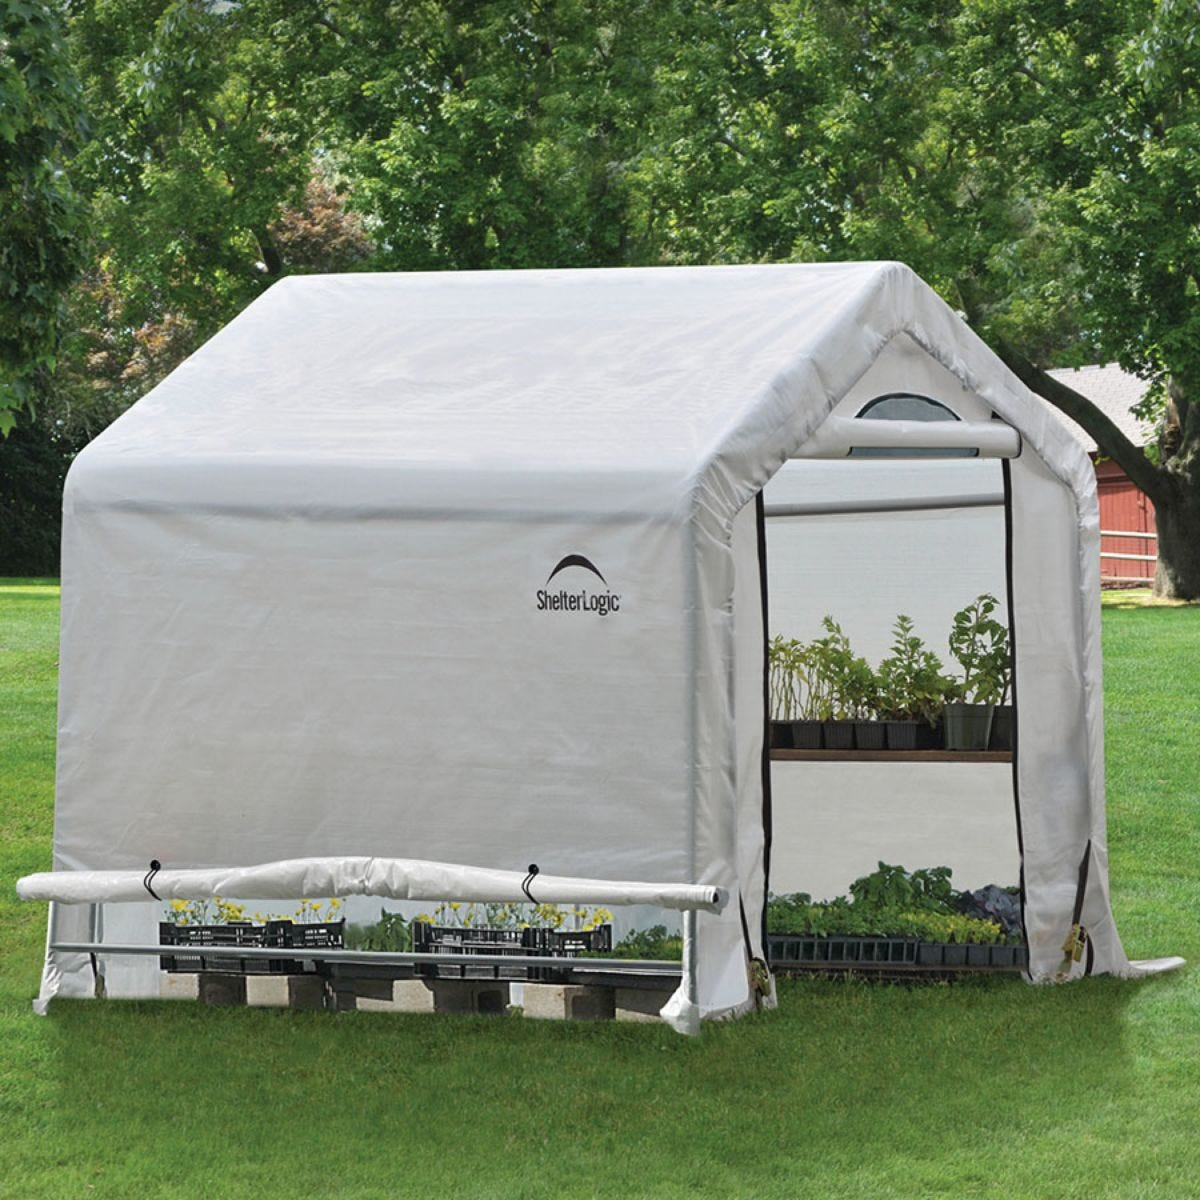 ShelterLogic 6ft x 6ft Greenhouse in a Box